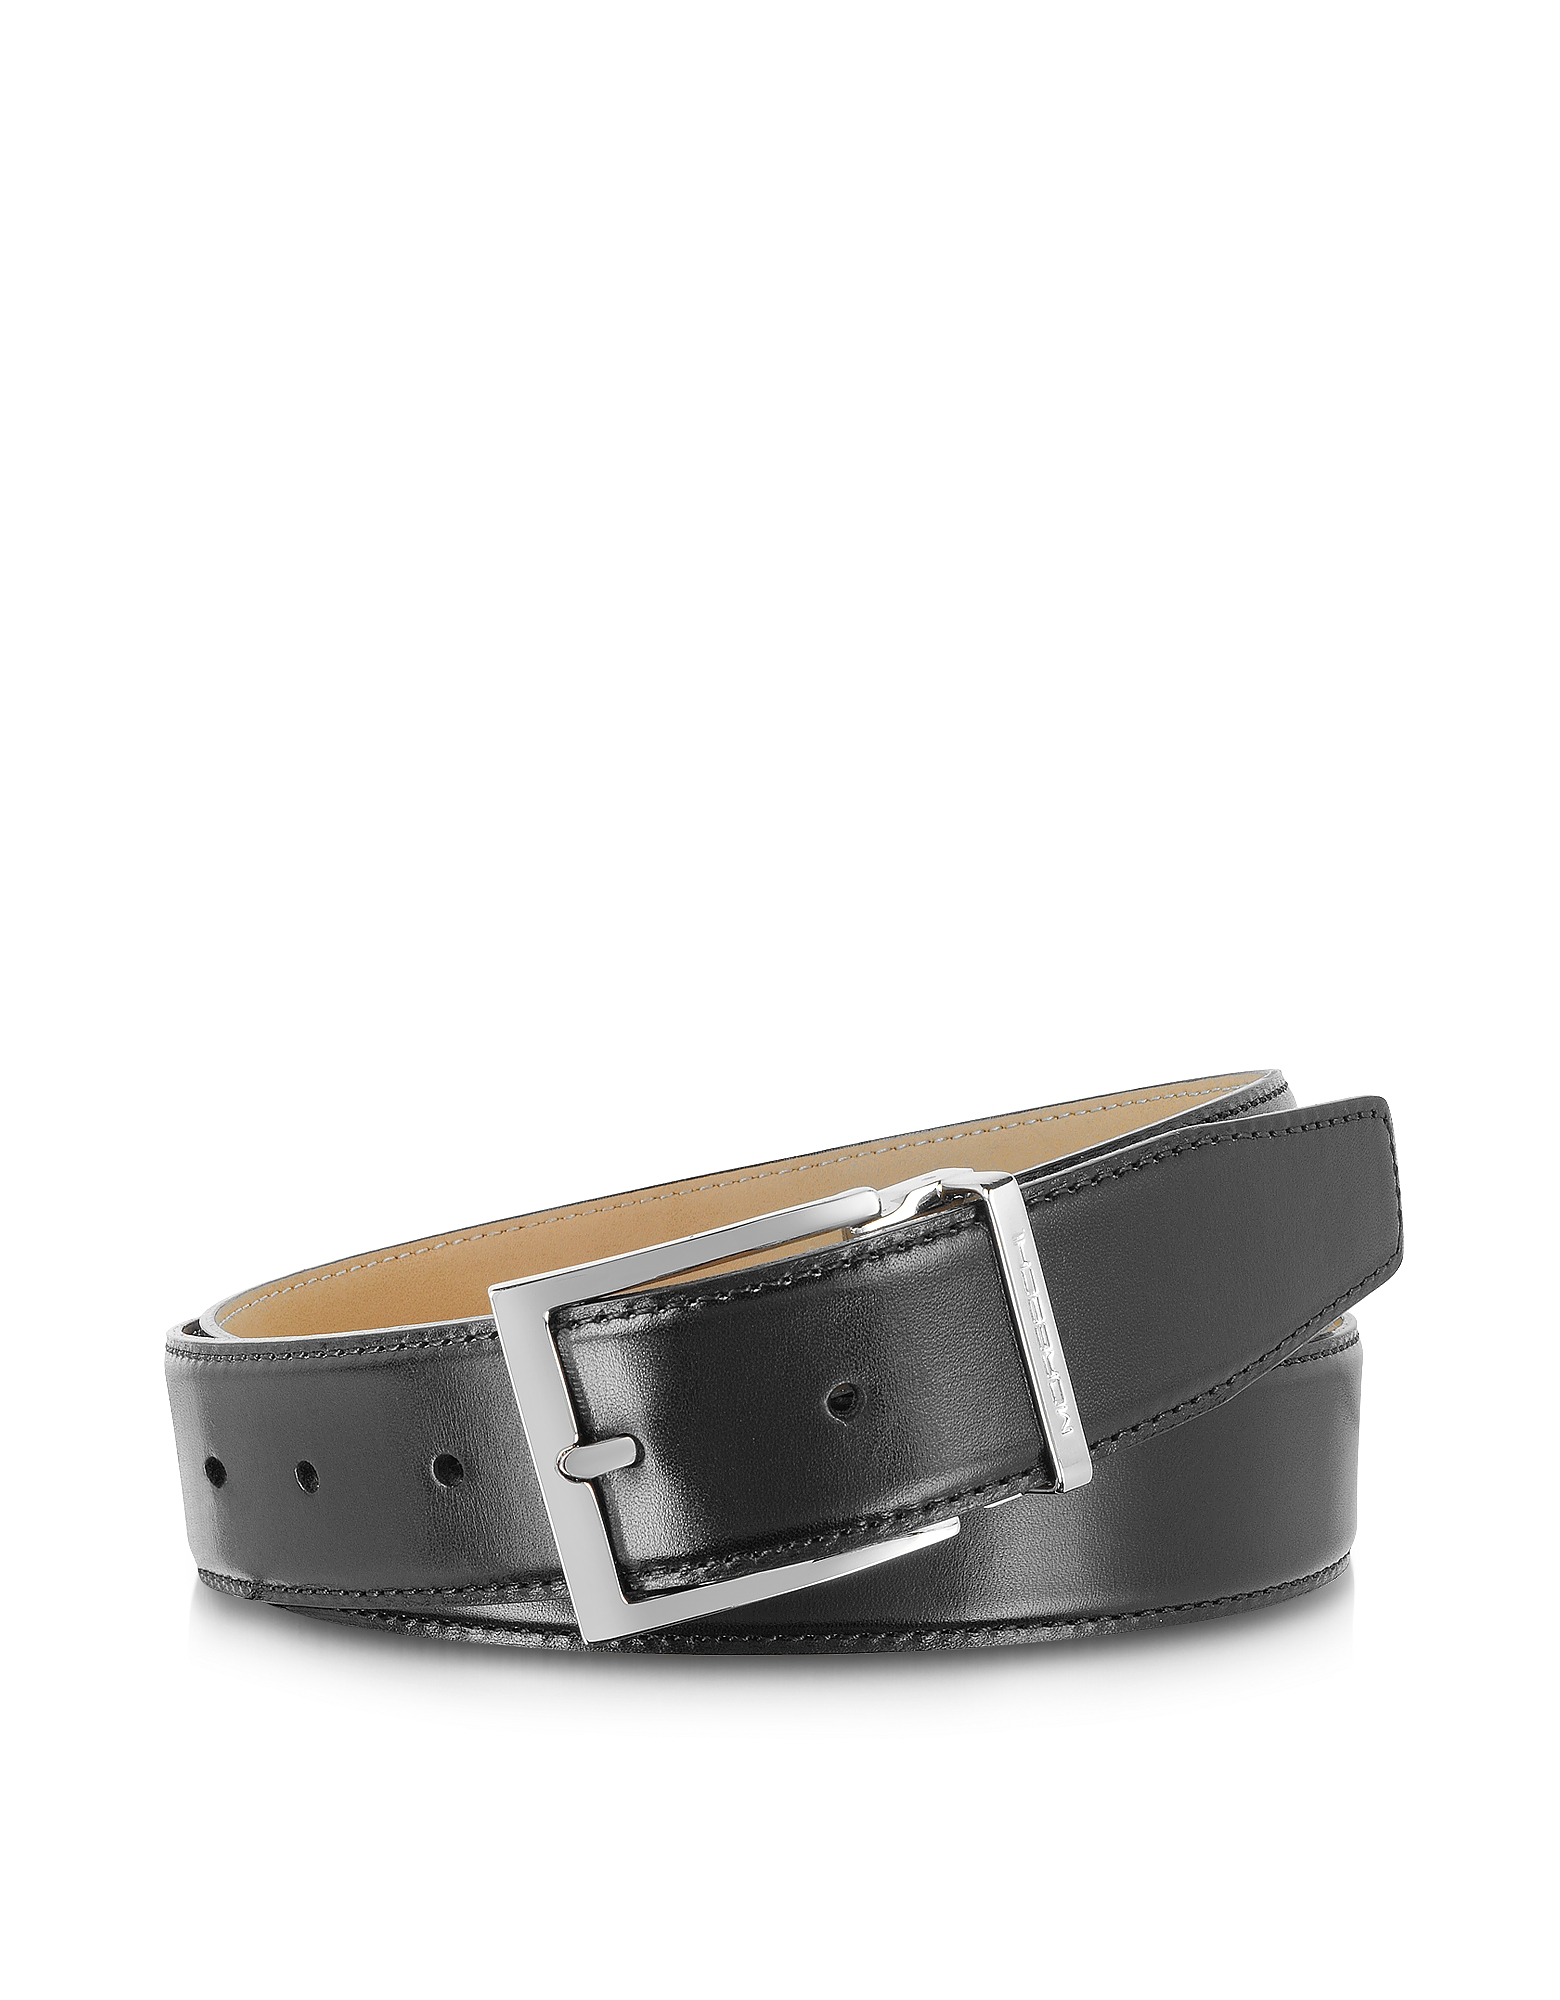 Moreschi Men's Belts, York Black Calf Leather Belt